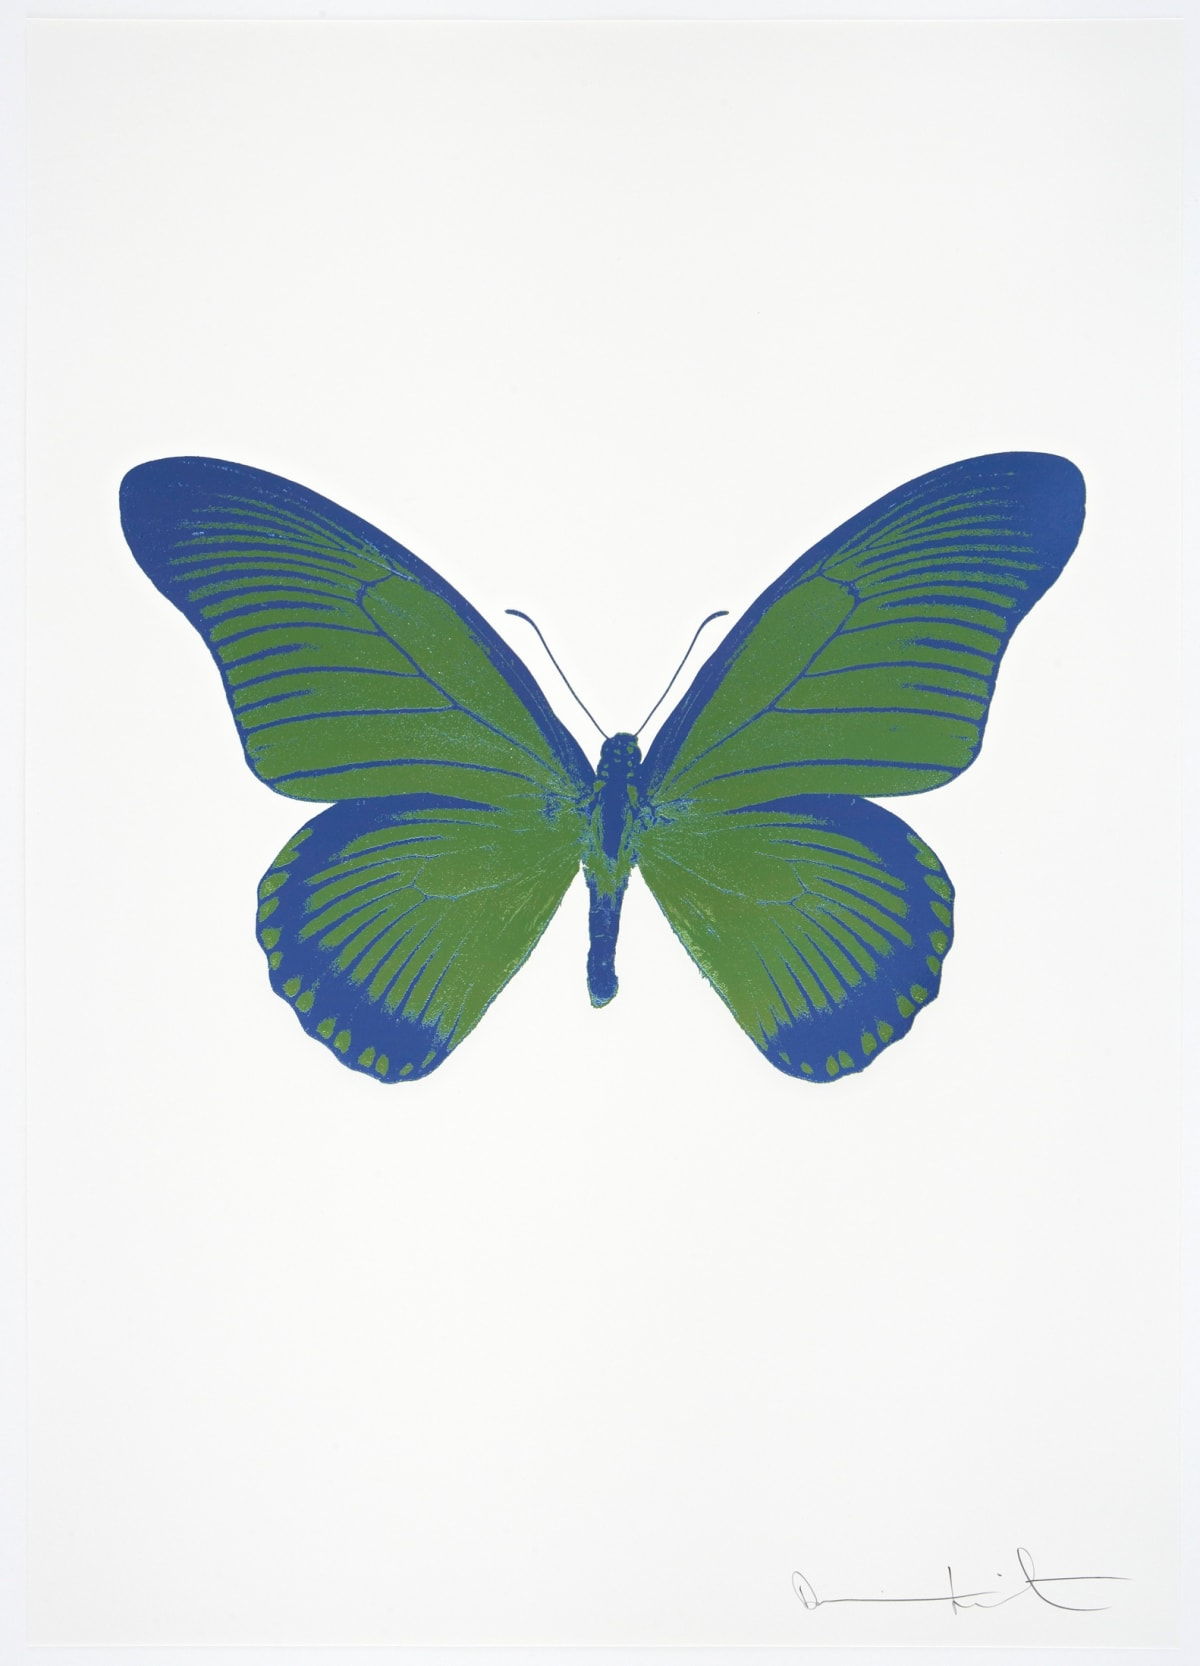 Damien Hirst The Souls IV - Leaf Green/Frost Blue/Frost Blue, 2010 2 colour foil block on 300gsm Arches 88 archival paper. Signed and numbered. Published by Paul Stolper and Other Criteria 72 x 51cm OC8042 / 1418-65 Edition of 15